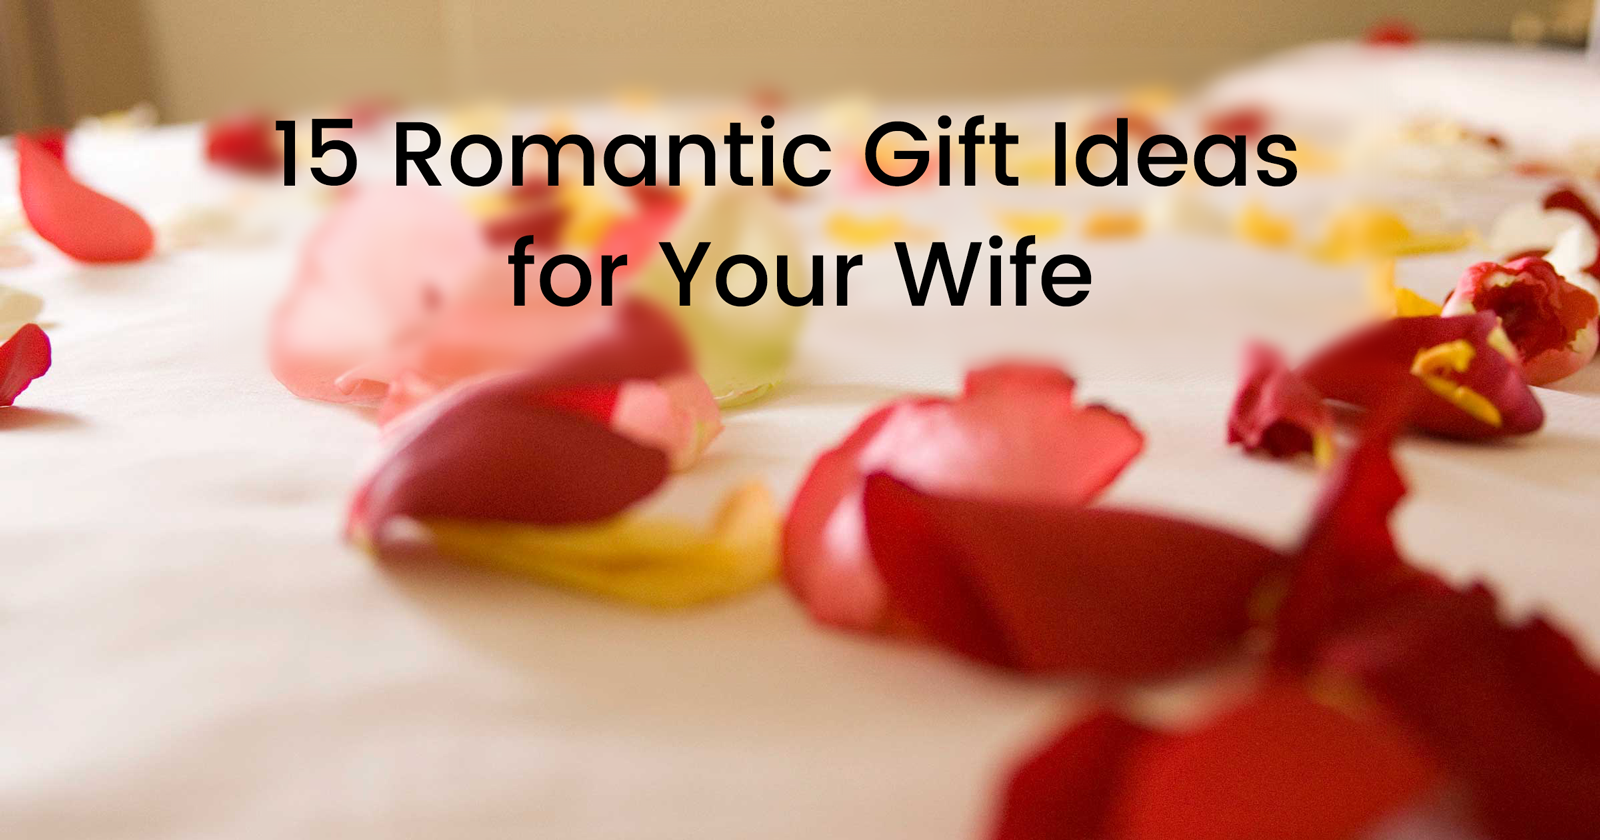 15 romantic gift ideas for your wife | gift help